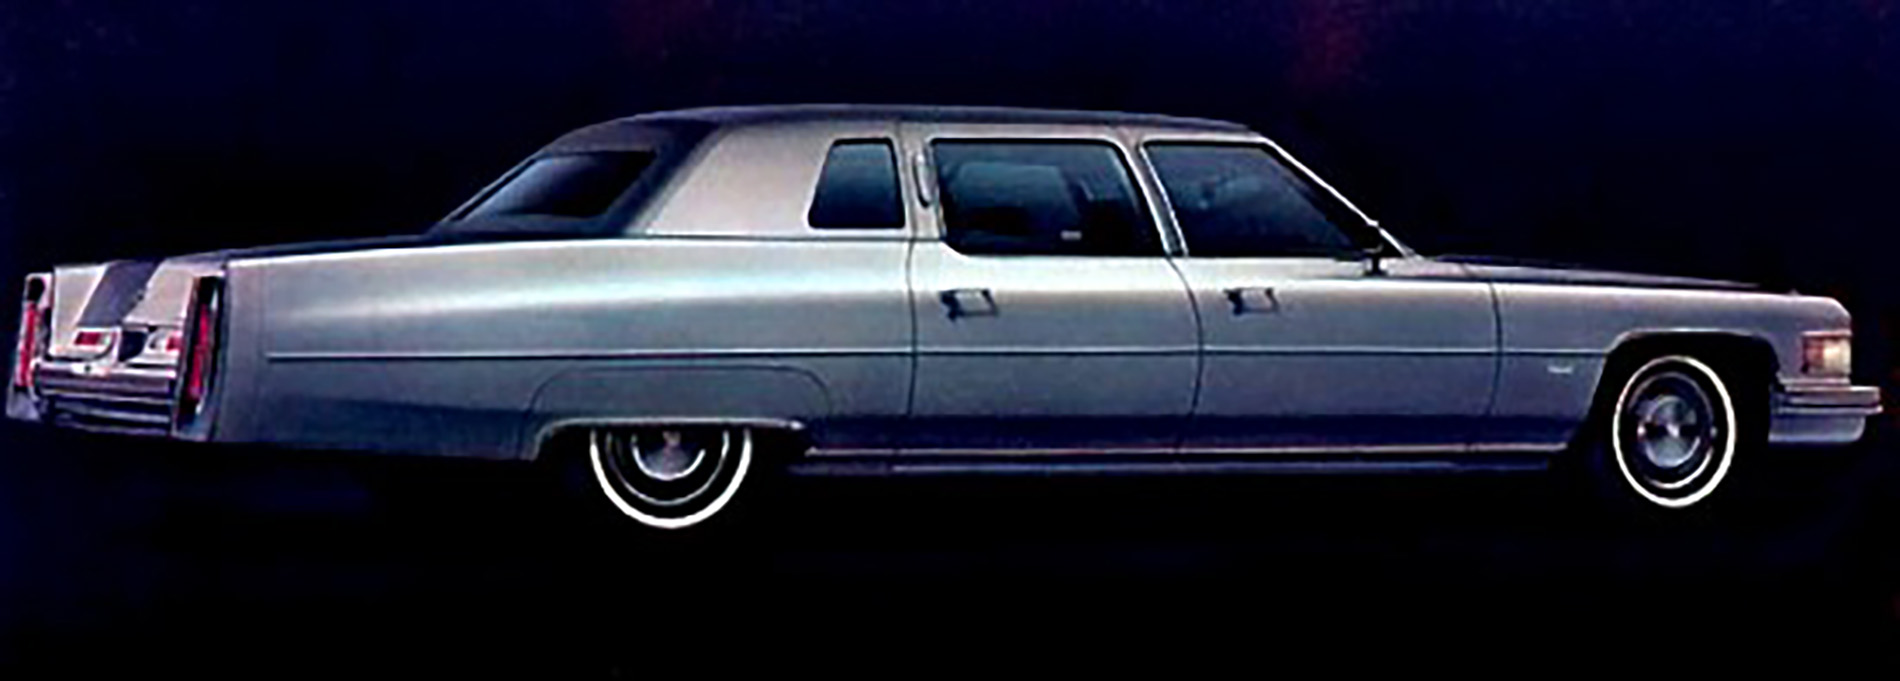 1975 Cadillac Fleetwood Seventy-Five Sedan